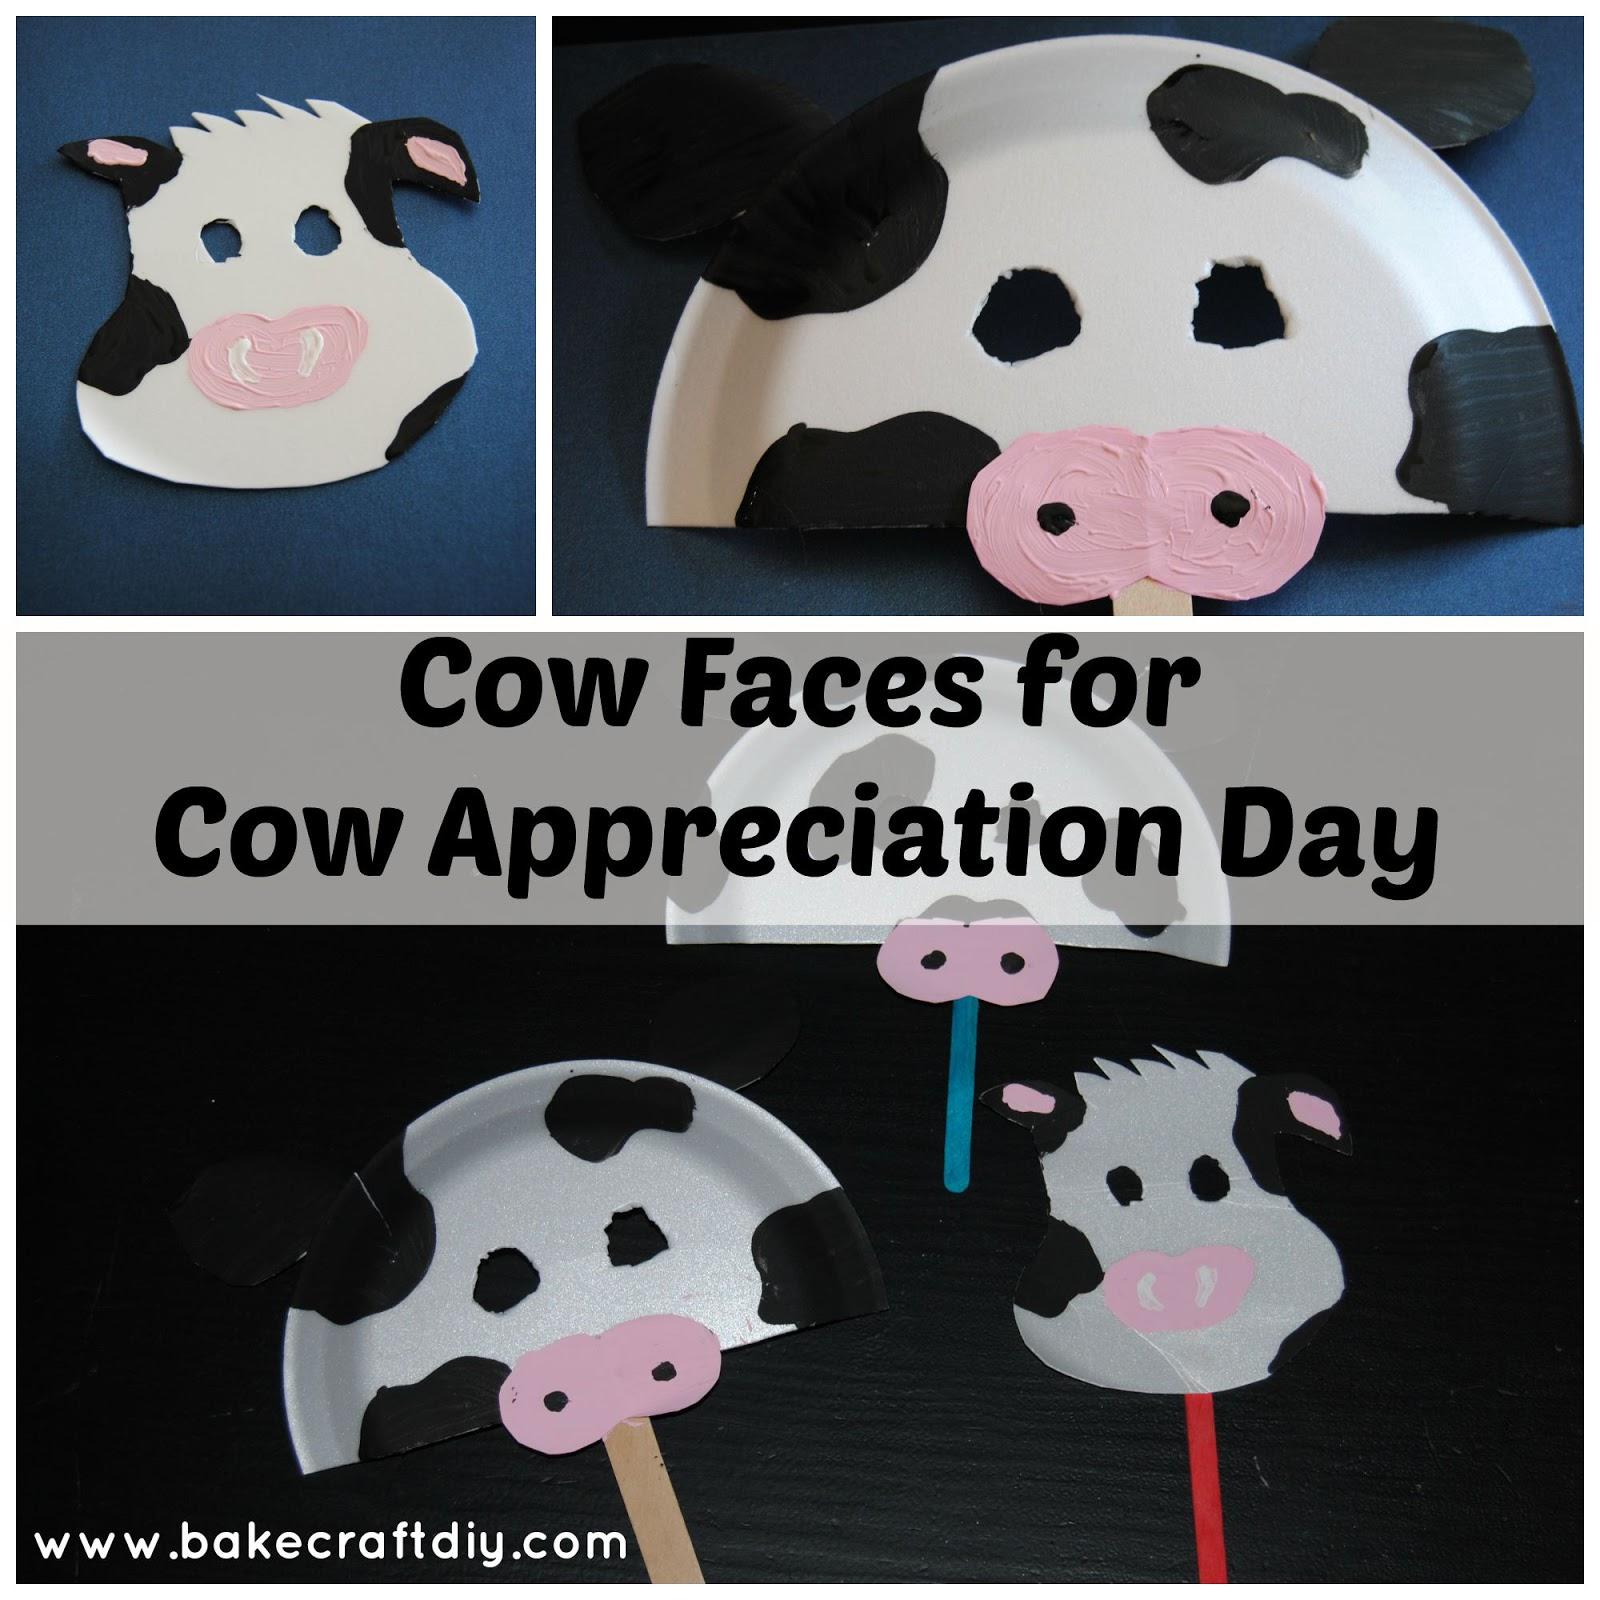 It's just a photo of Wild Chick Fil a Cow Appreciation Day Printable